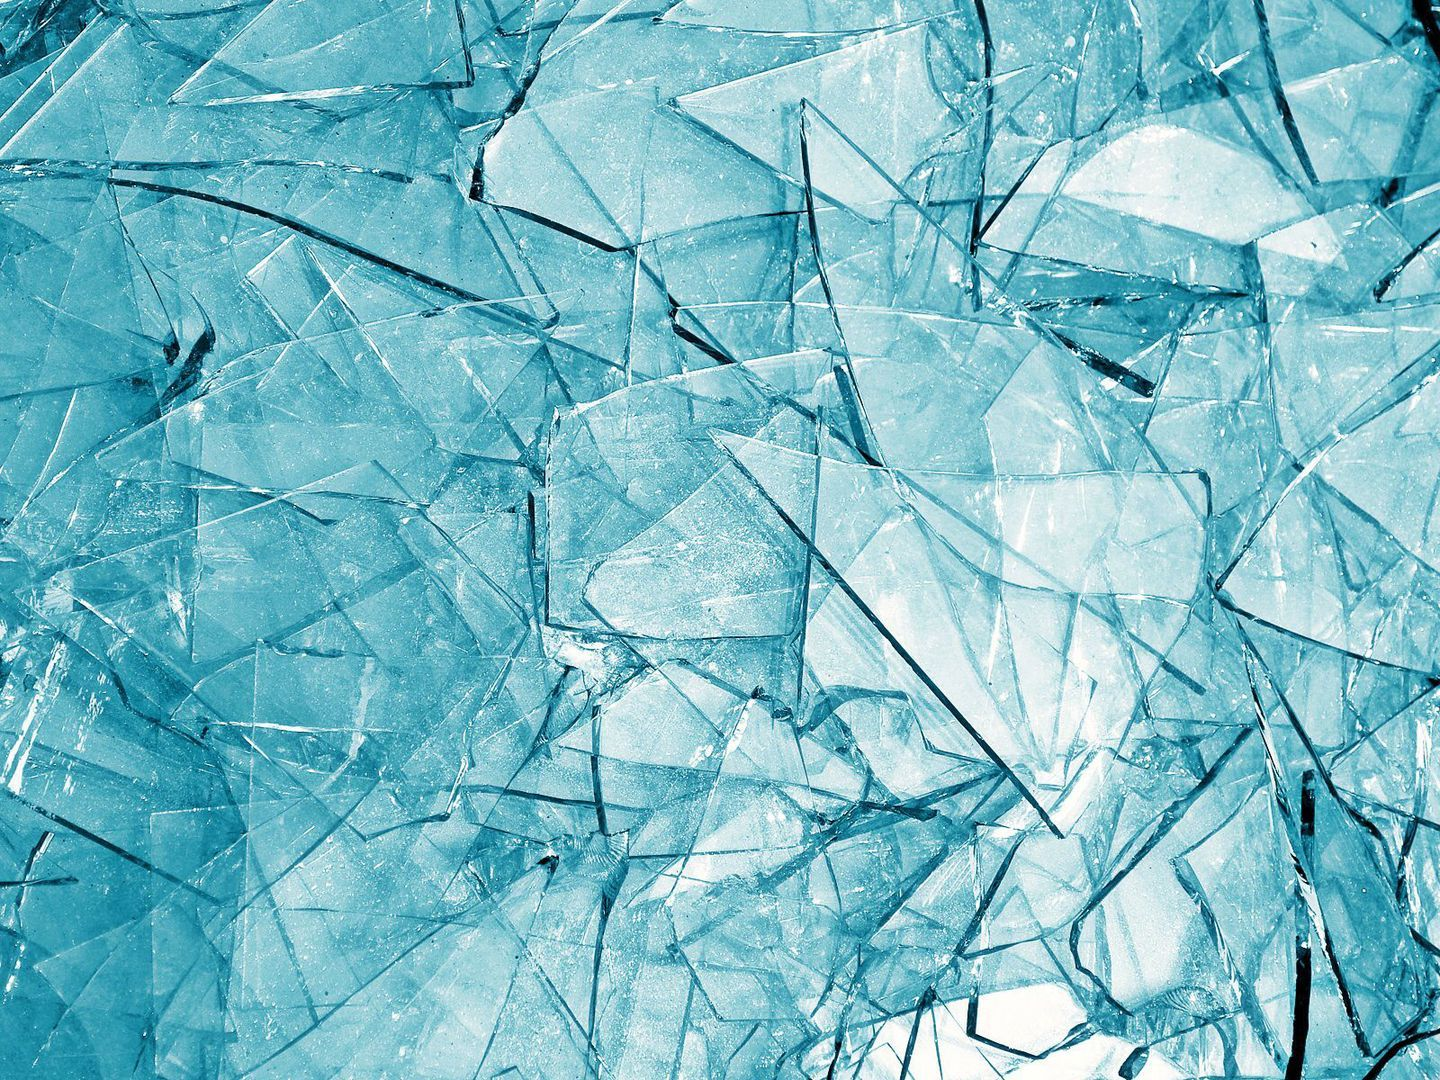 1,000 Shards Of Glass - 1,000 Shards Of Glass | Of ...